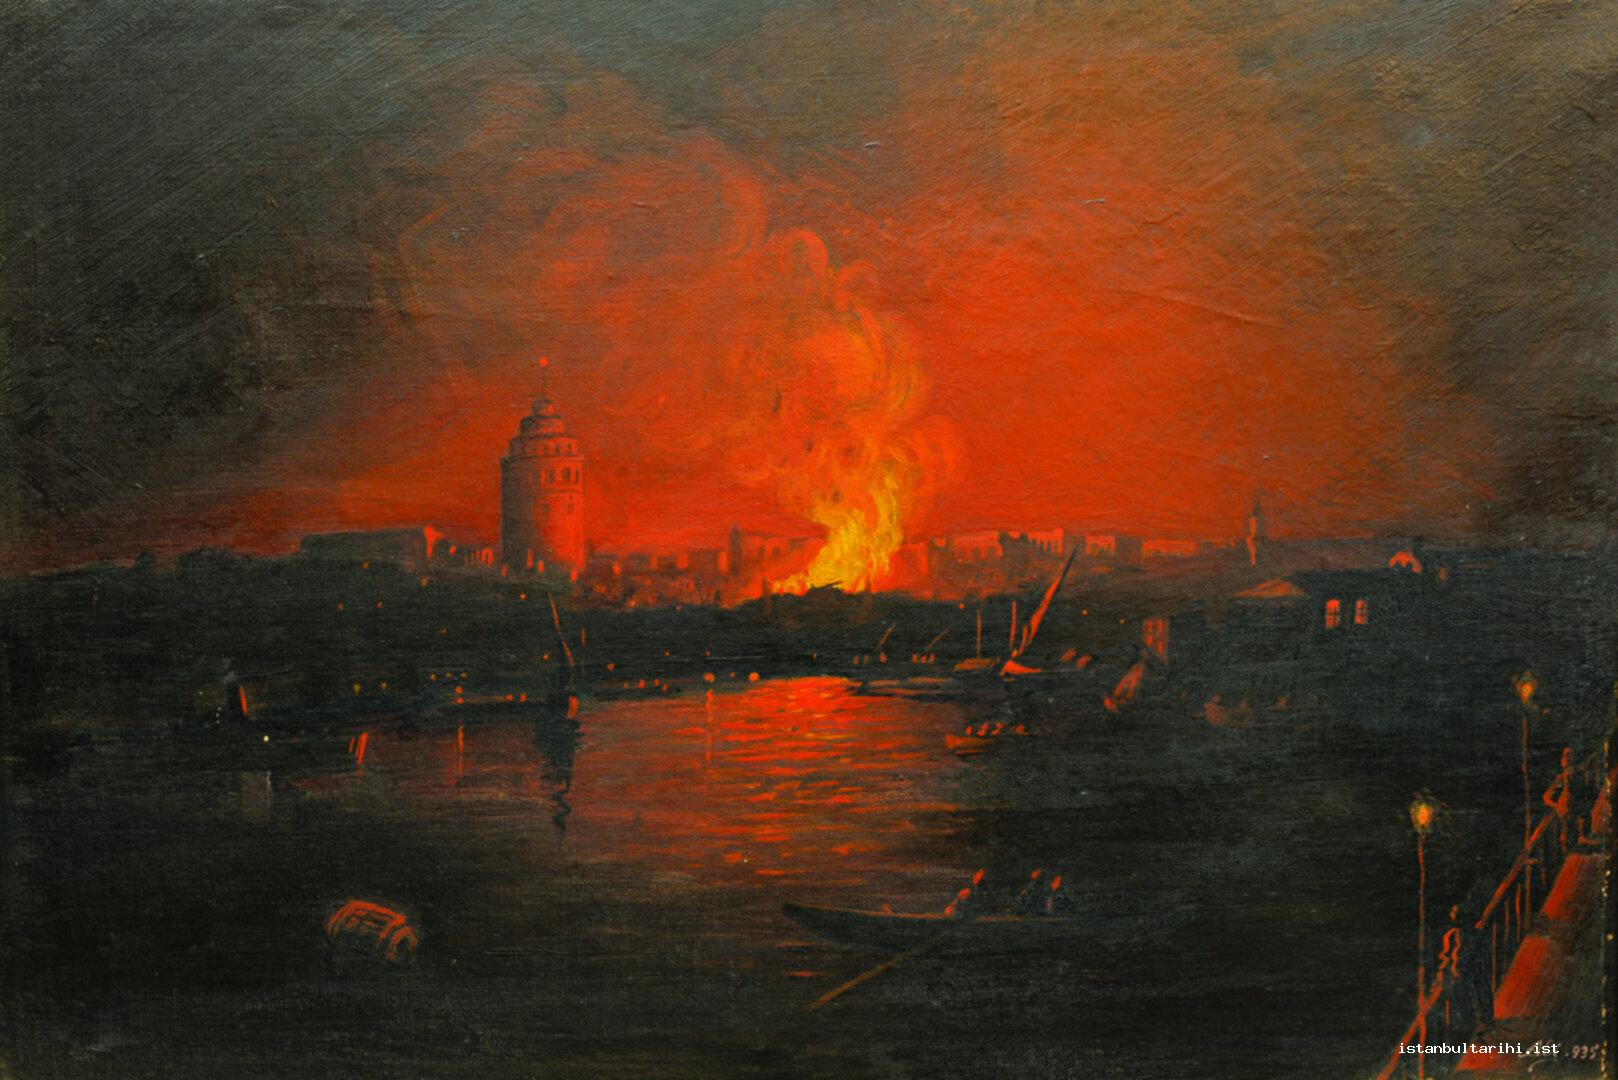 1- A painting depicting Galata fire which happened in 1935 (Istanbul Metropolitan Municipality, Fire Department Museum)